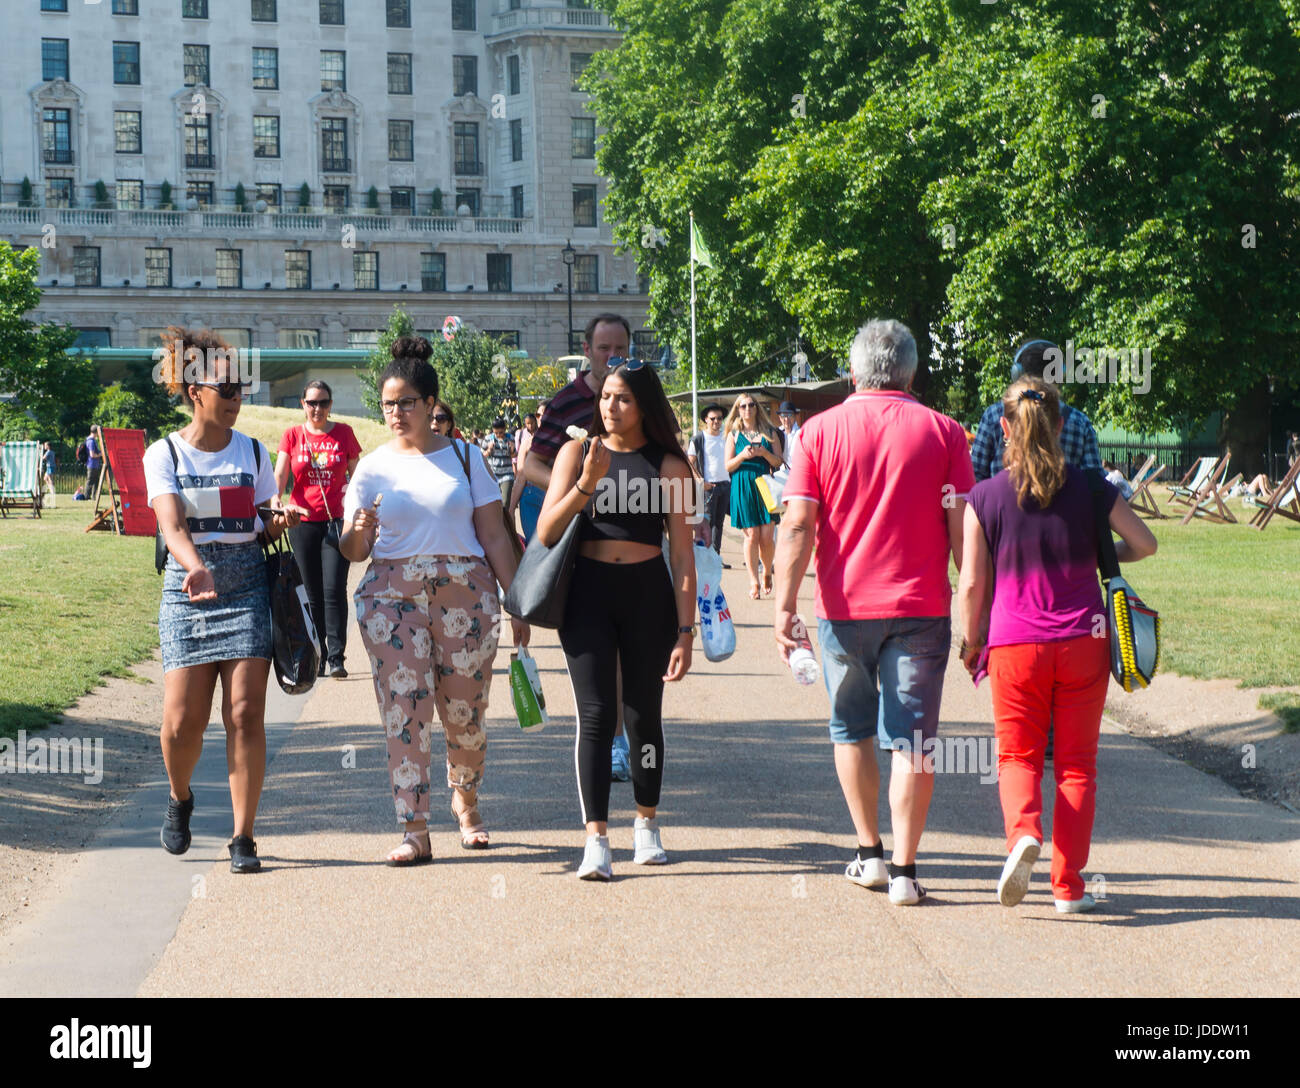 20th June, 2017. People Are Out Enjoying The Hot Weather As A Summertime  Heat Wave Hits London And The UK Credit: Michael Tubi/Alamy Live News